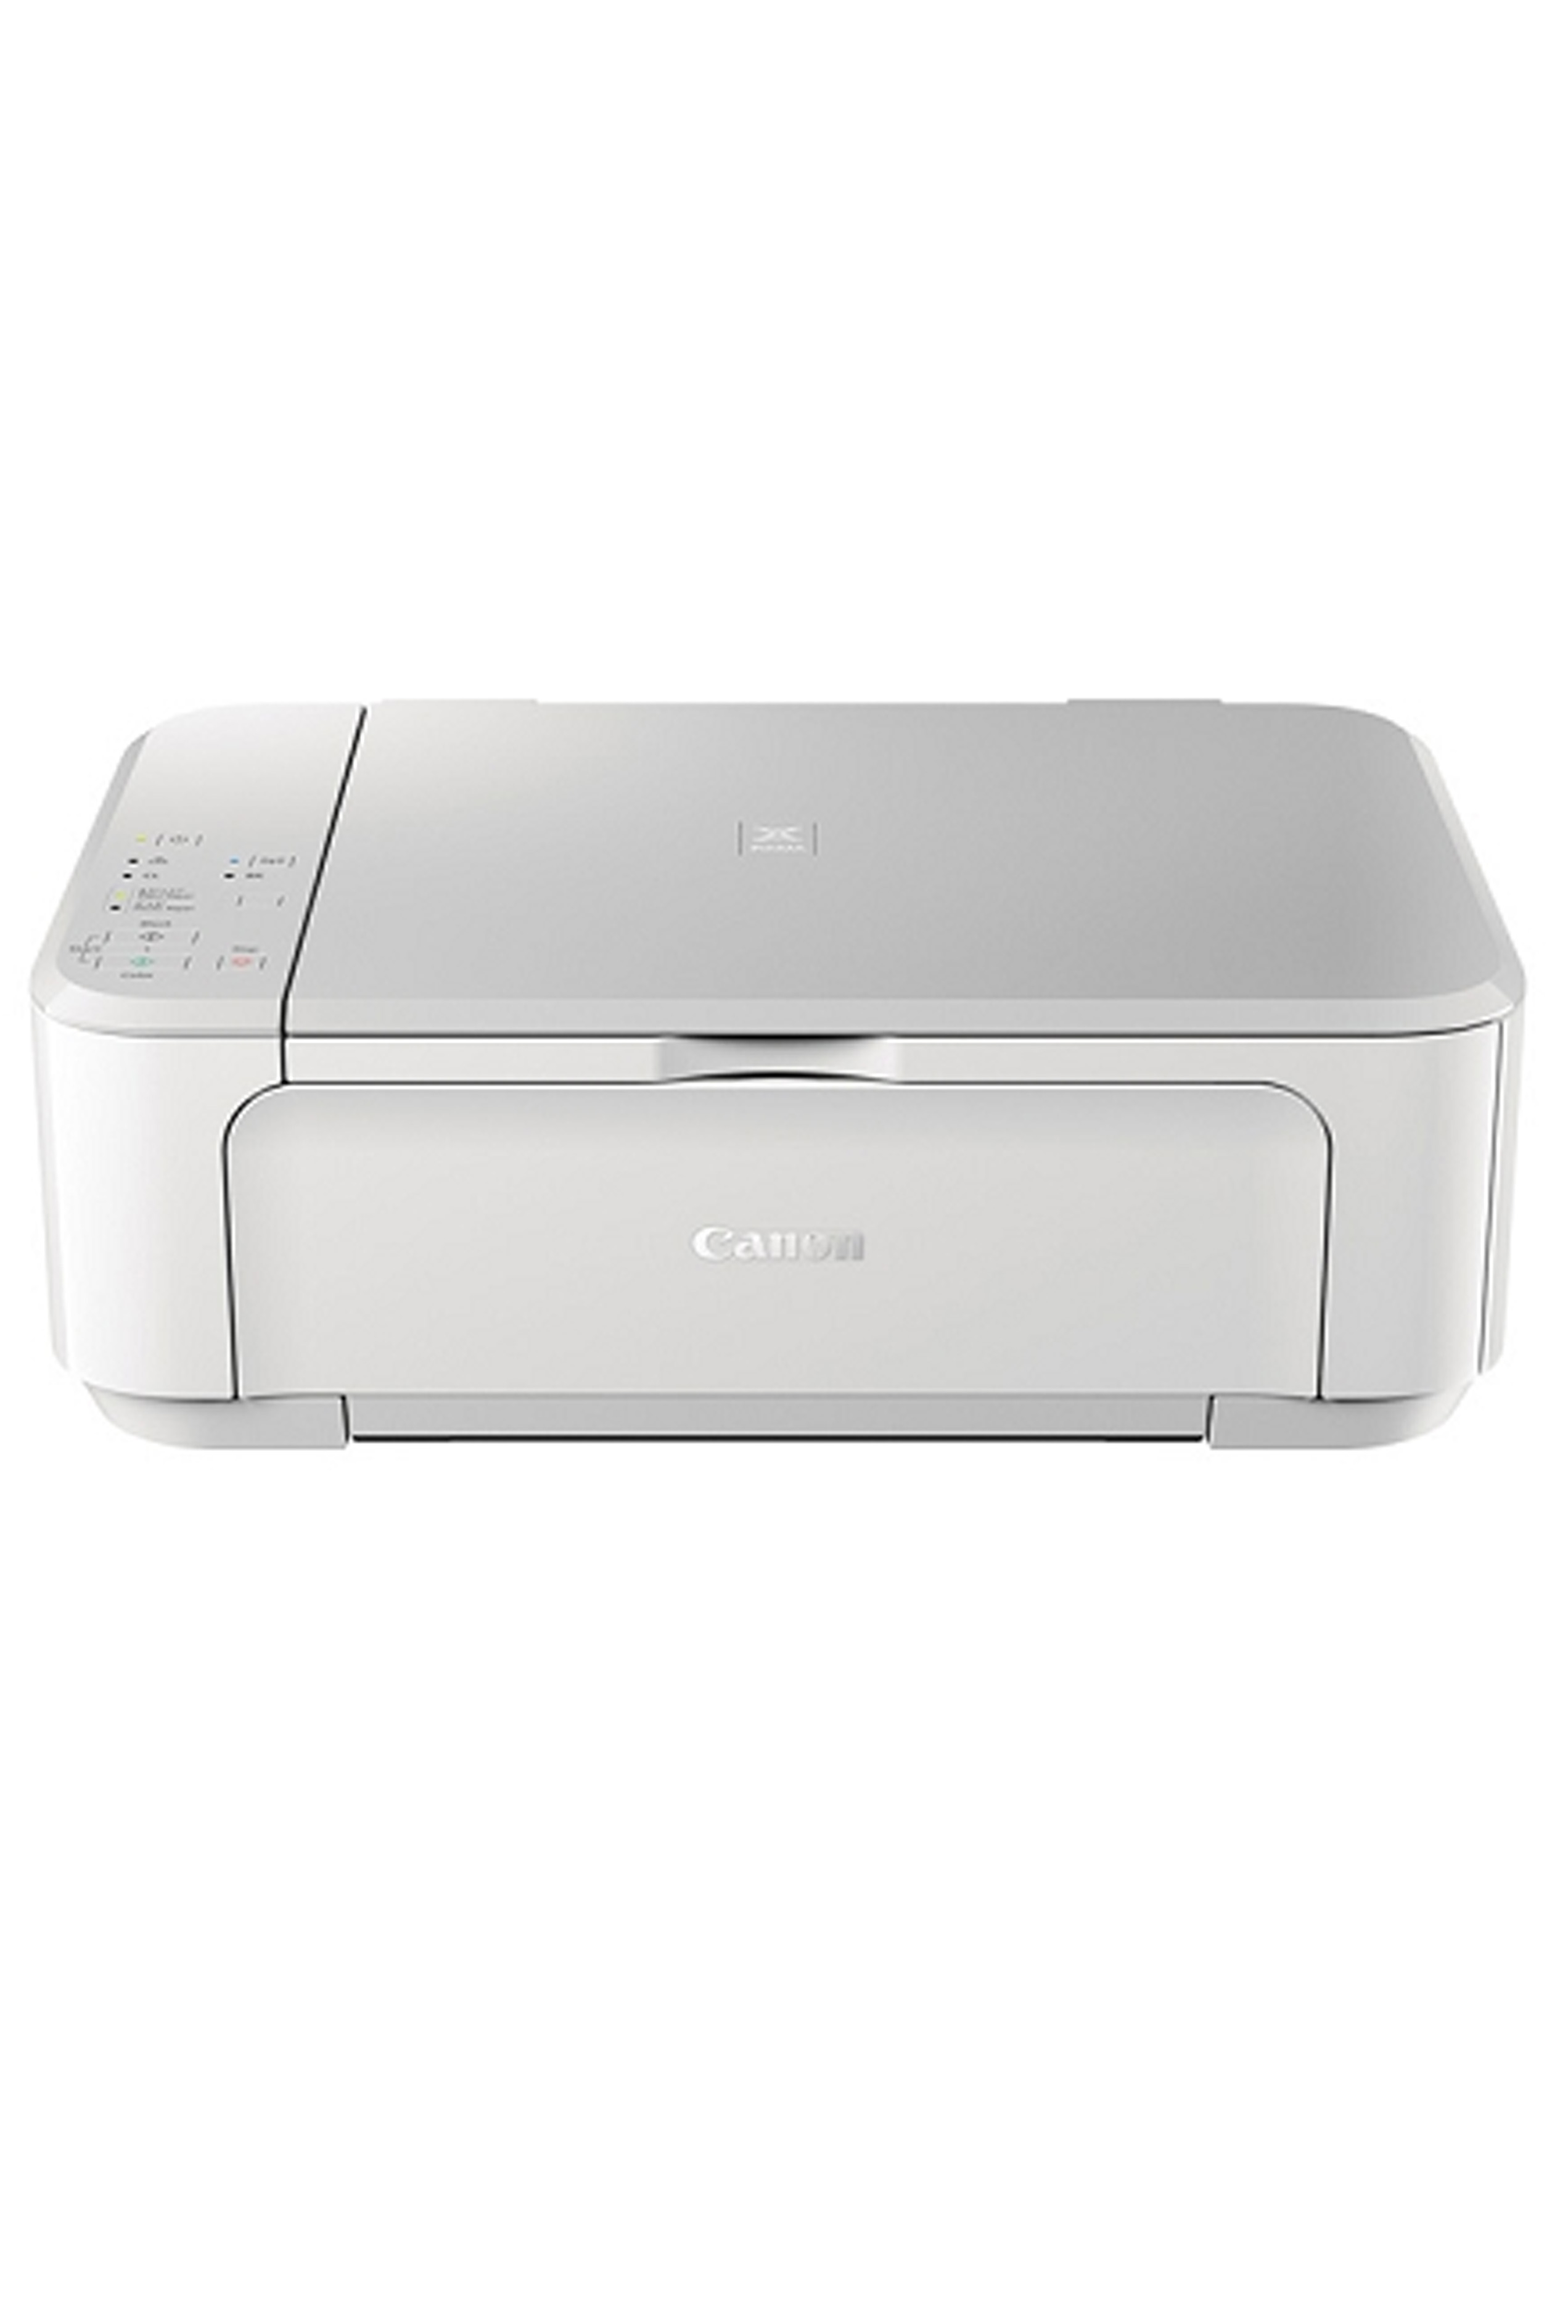 Canon PIXMA MG3620 White Wireless All-In-One (9.9ipm/ 5.7ipm)